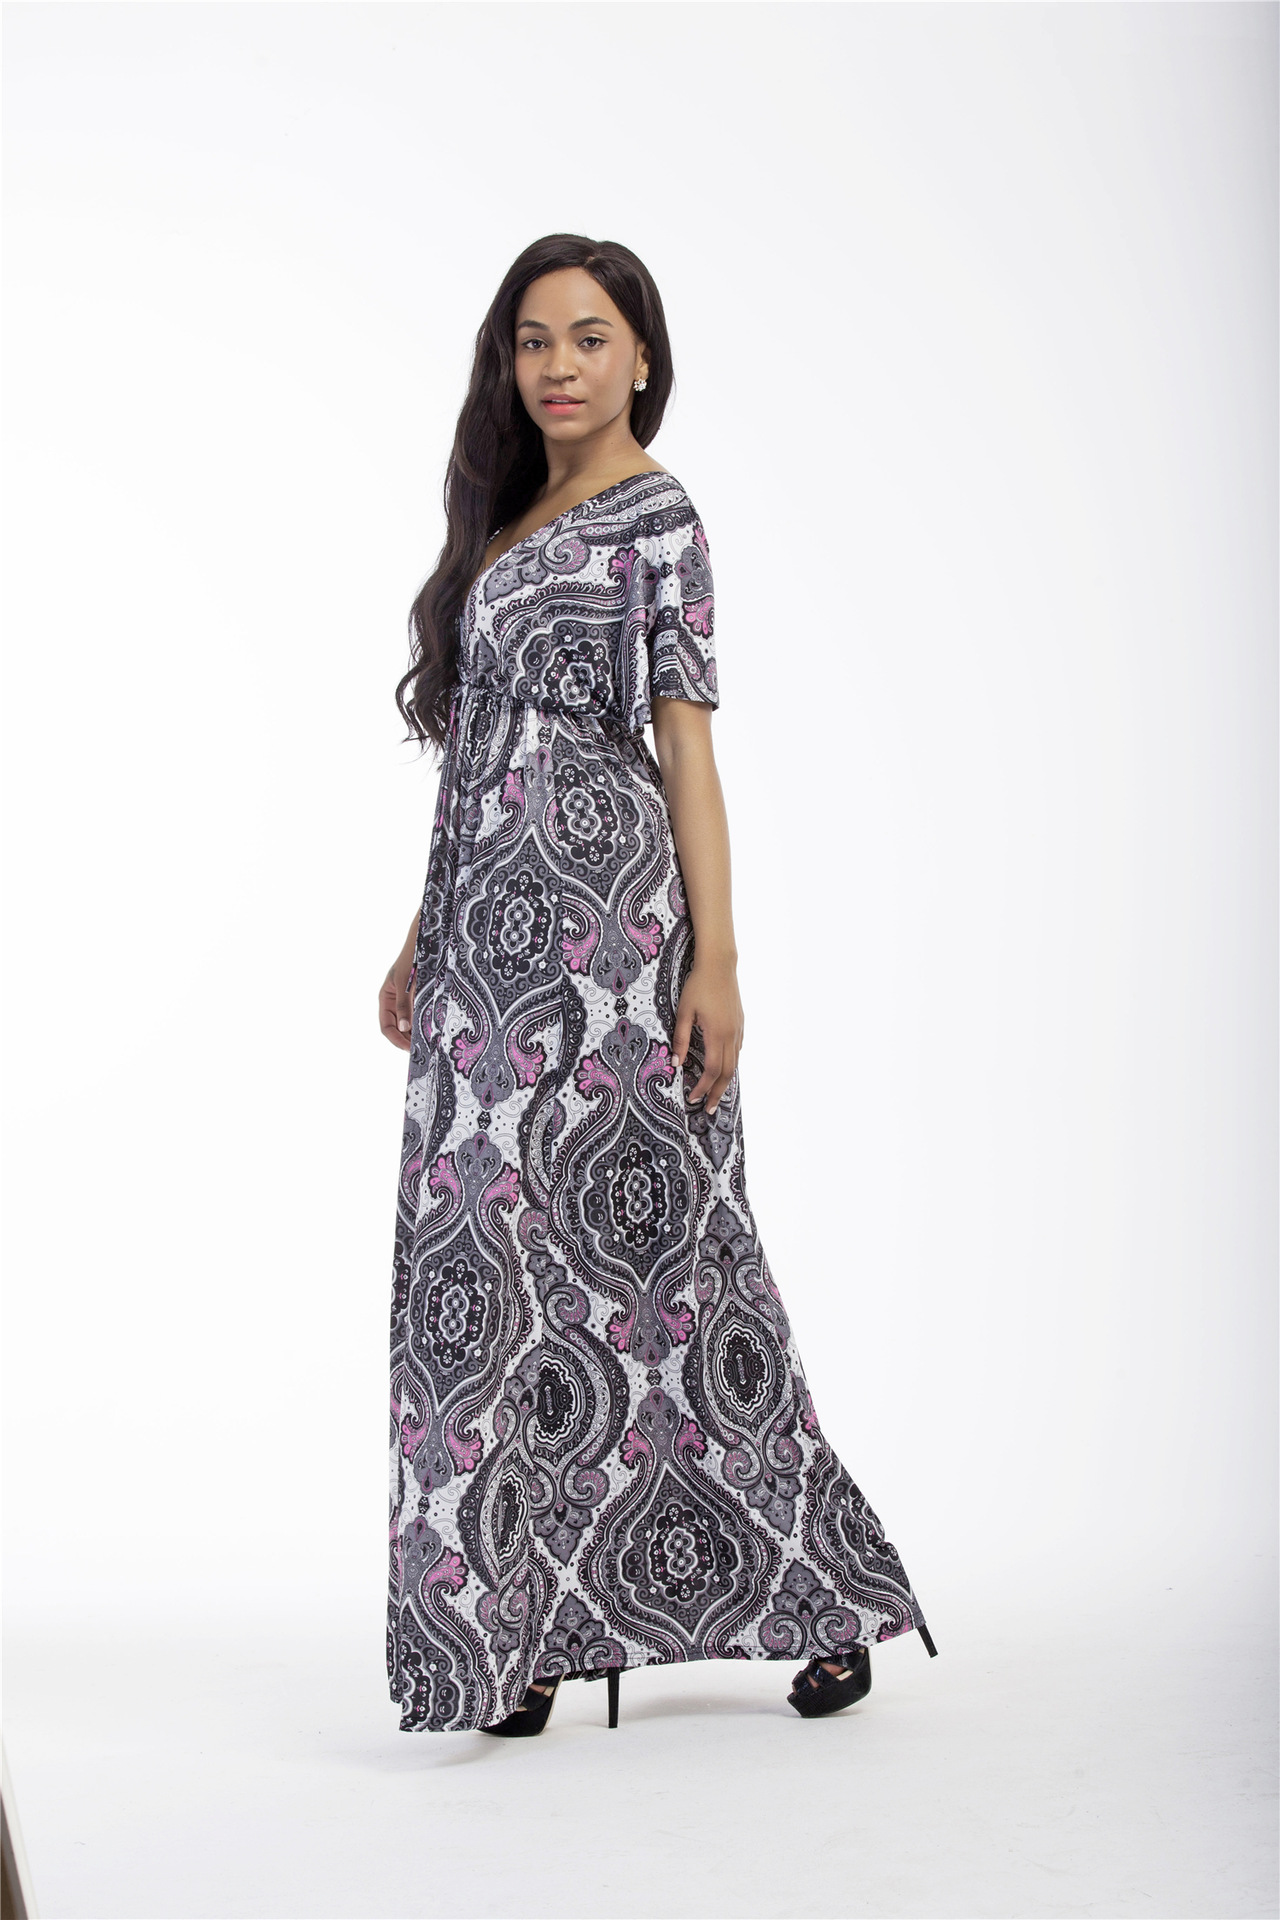 New Style WOMEN'S Dress Europe And America Deep V-neck Long Skirts Thailand Style Printed Large Size Dress 6013